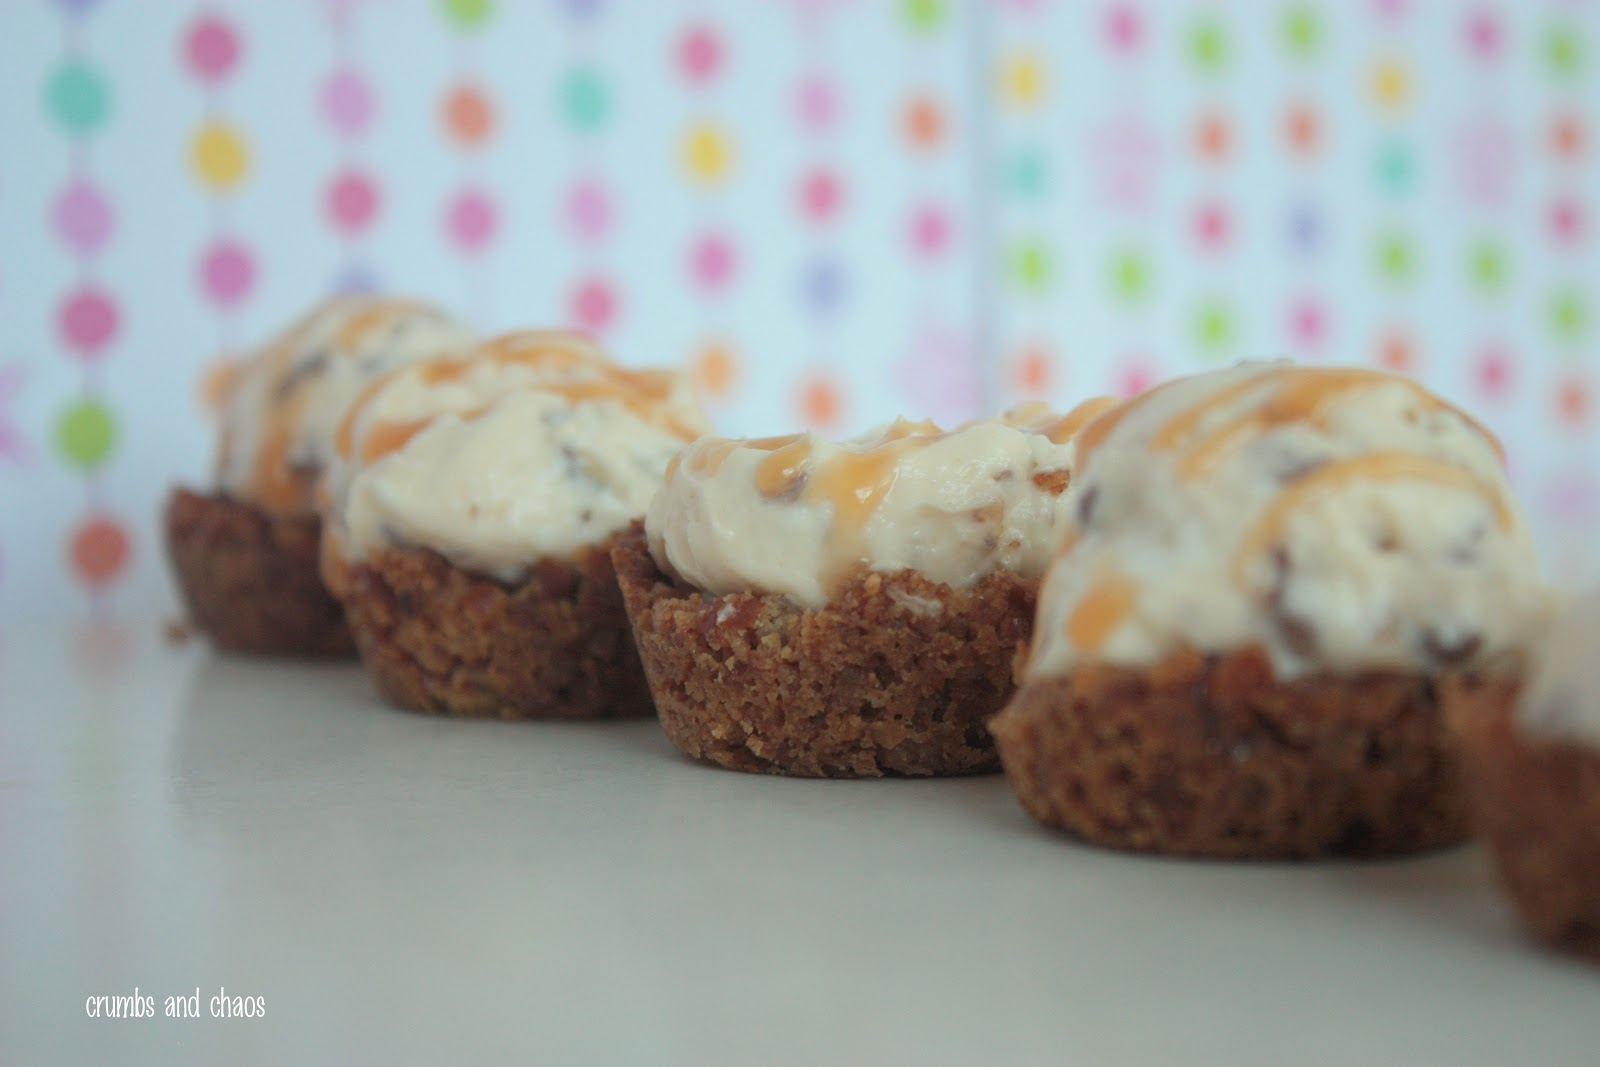 Sweet 'n Salty Caramel Mousse Cups - Crumbs and Chaos